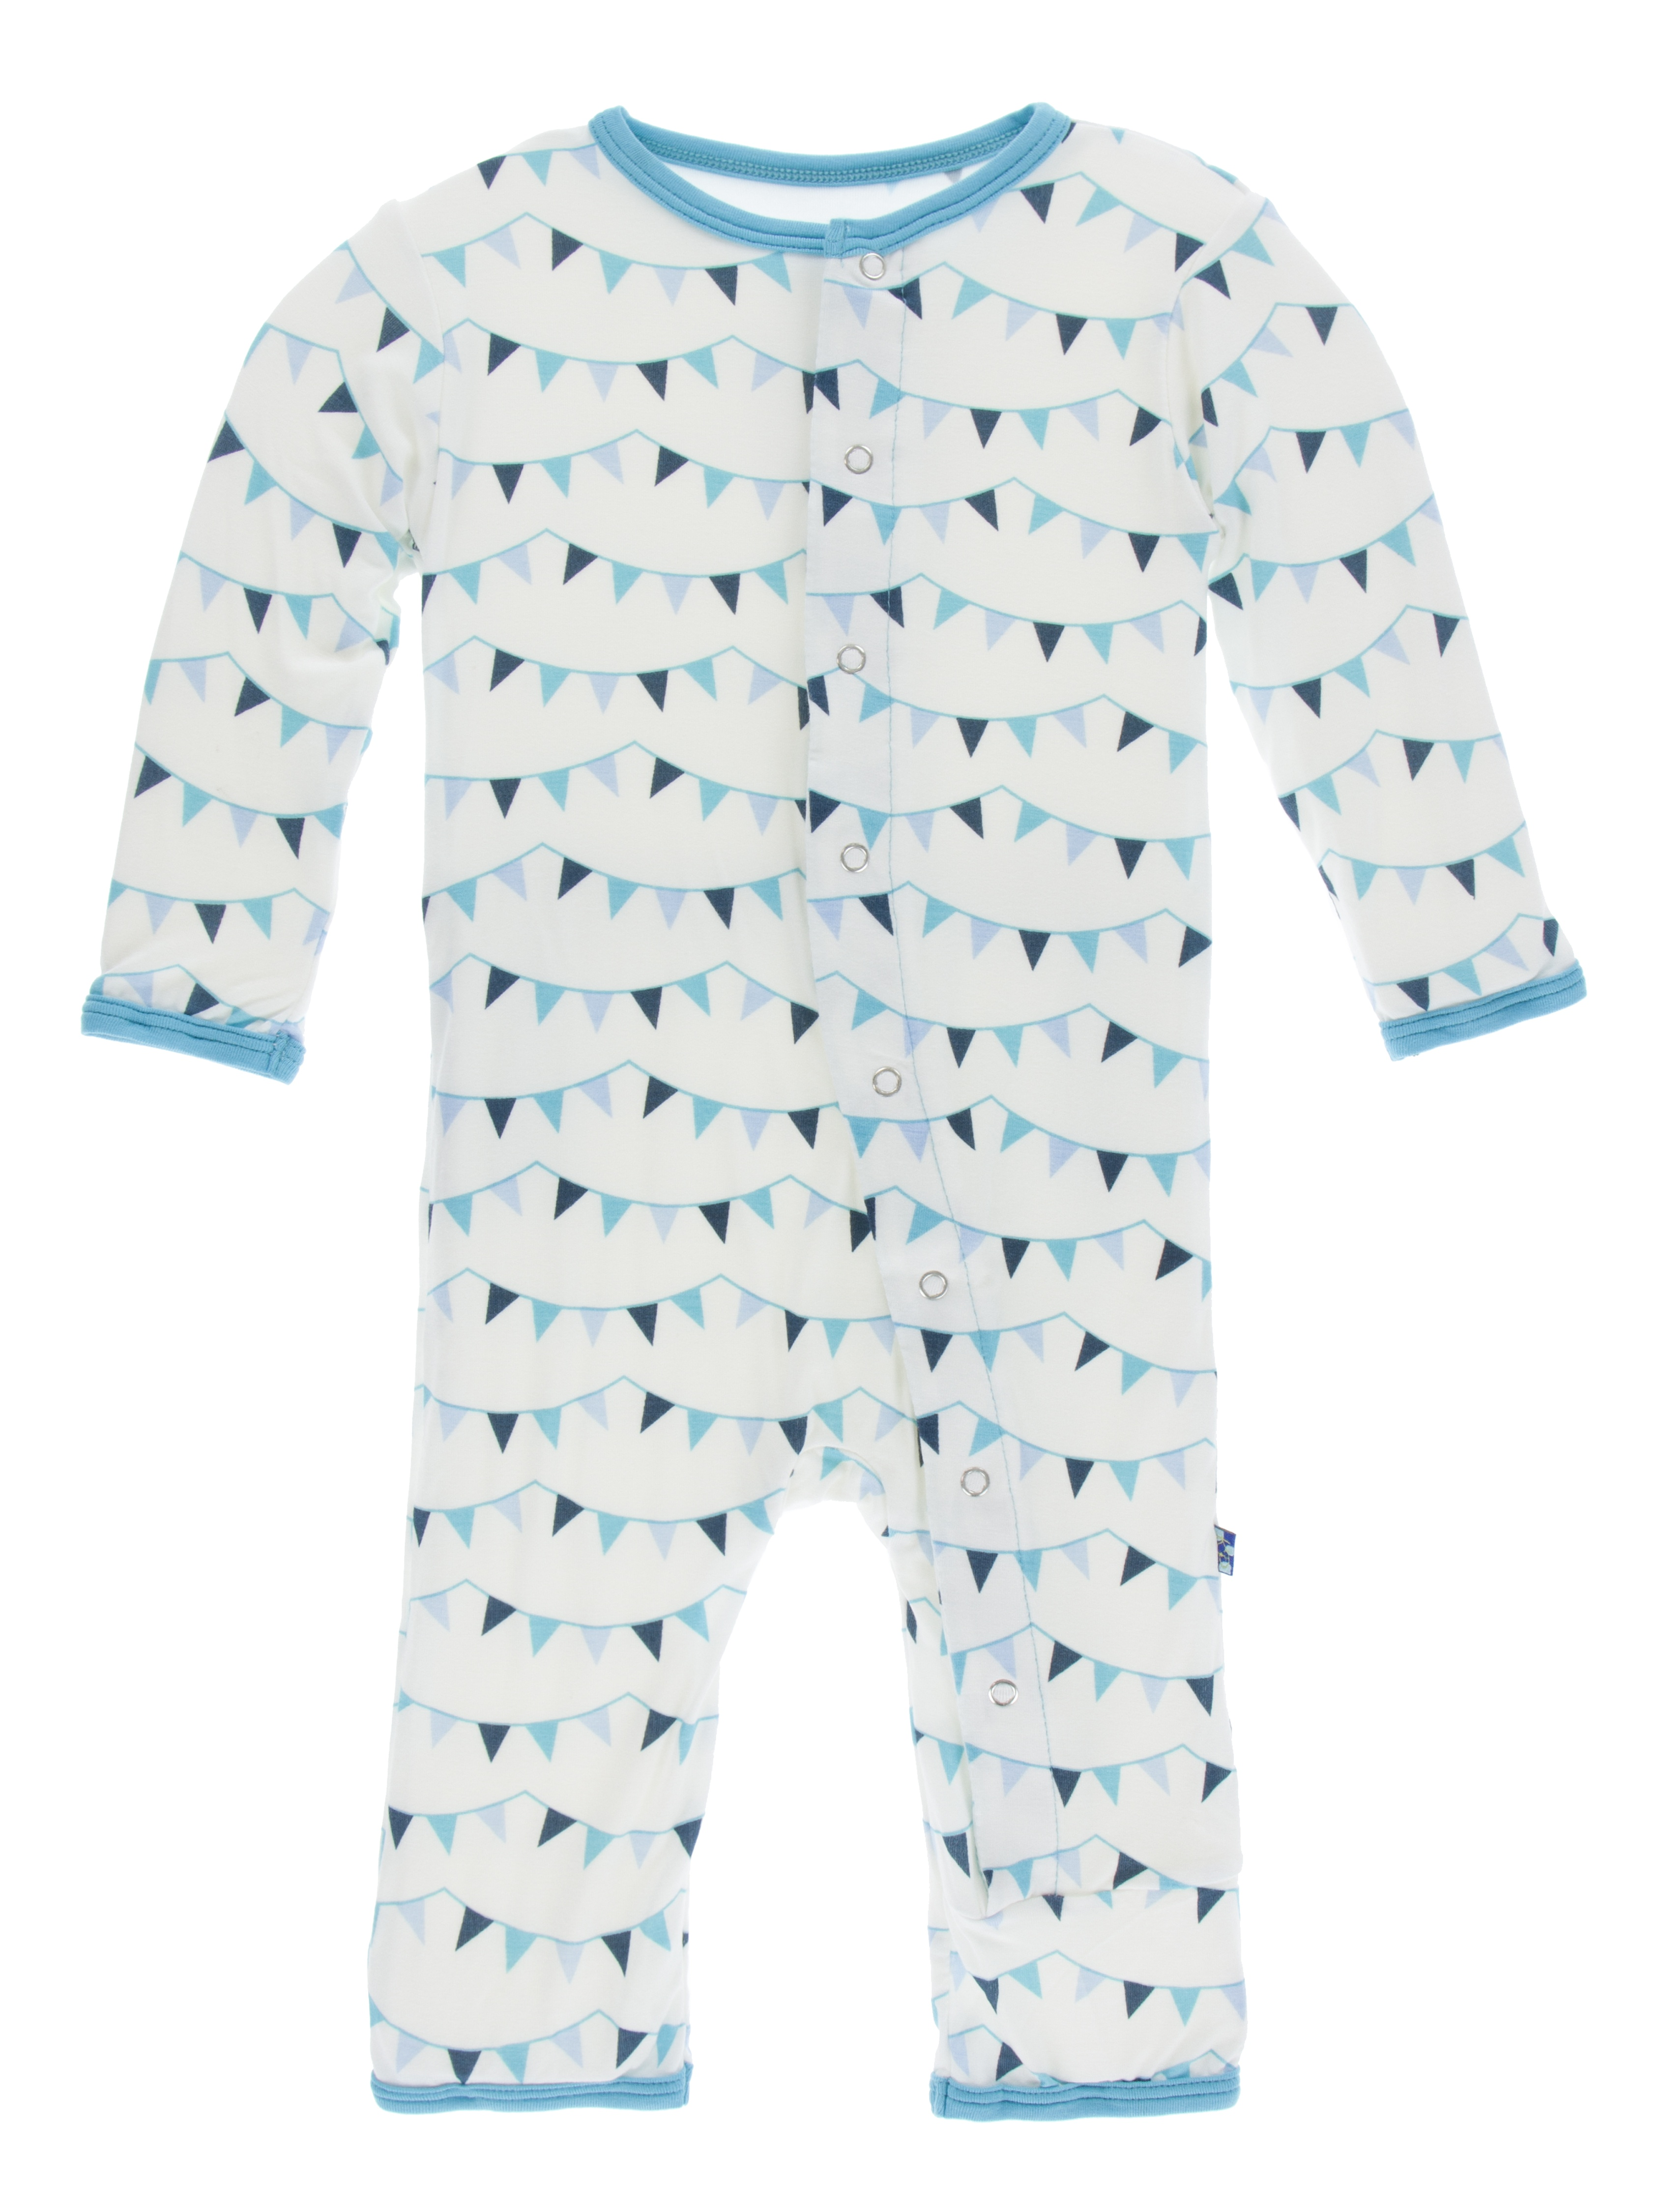 Kickee Pants Unisex Baby Print Coverall with Snaps (Confetti Party Flags -, 12-18 Months)